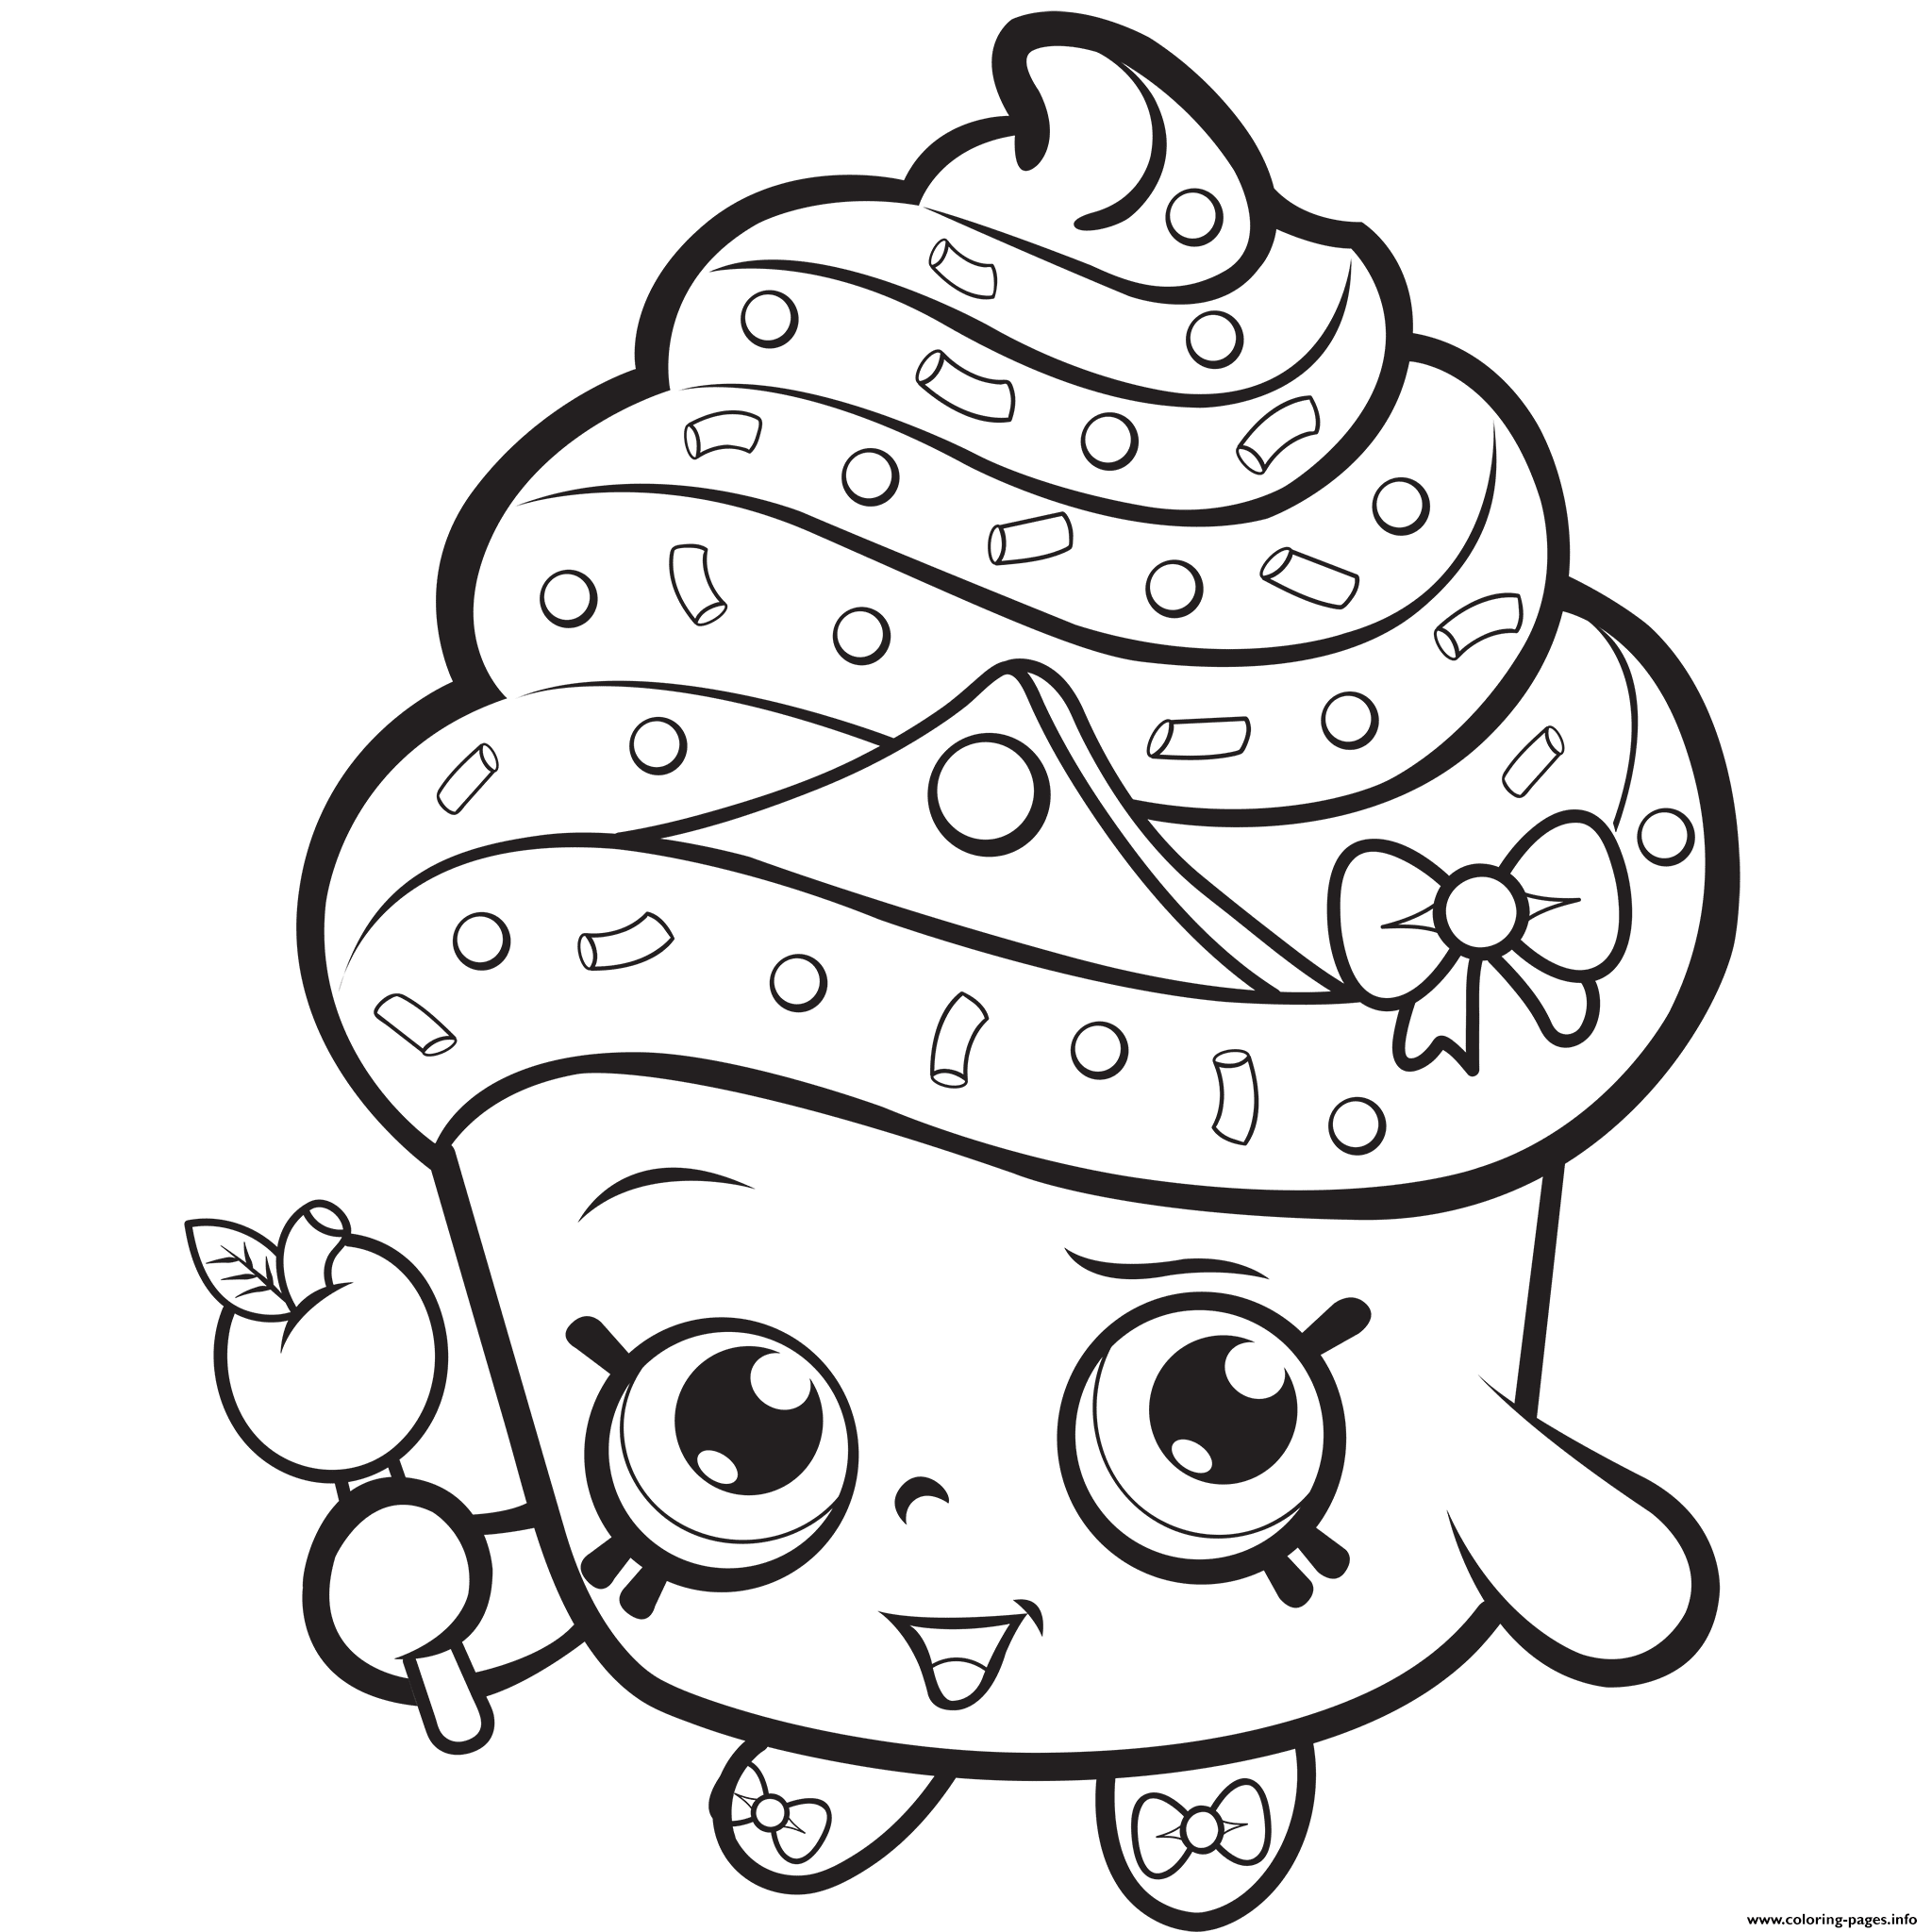 Engaging Print Out Coloring Pages Preschool To Sweet Colorful